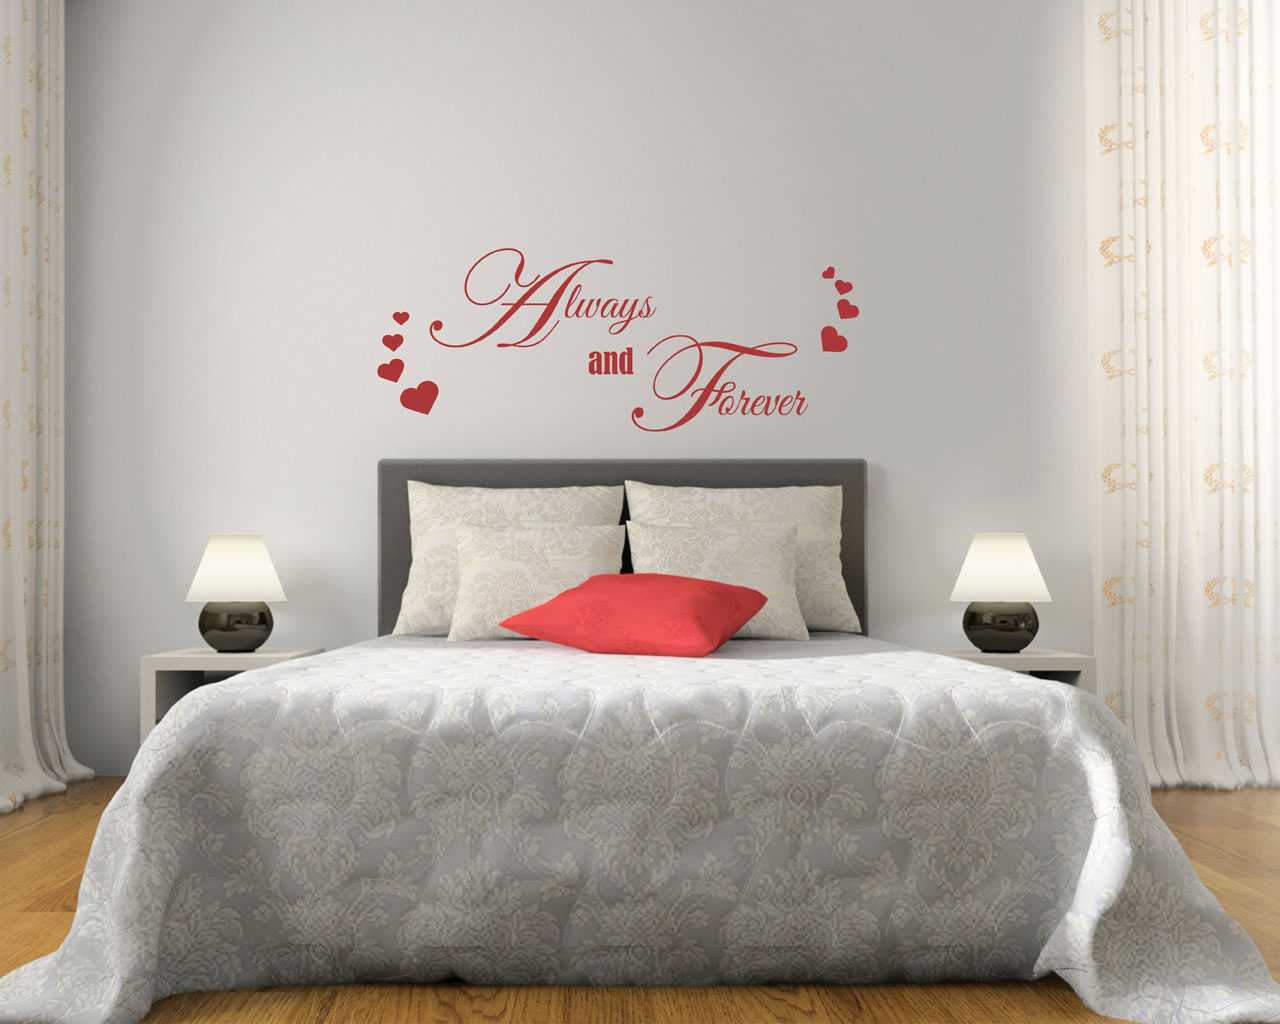 Always and forever amore adesivo murale interni - Decorazioni murali per camere da letto ...